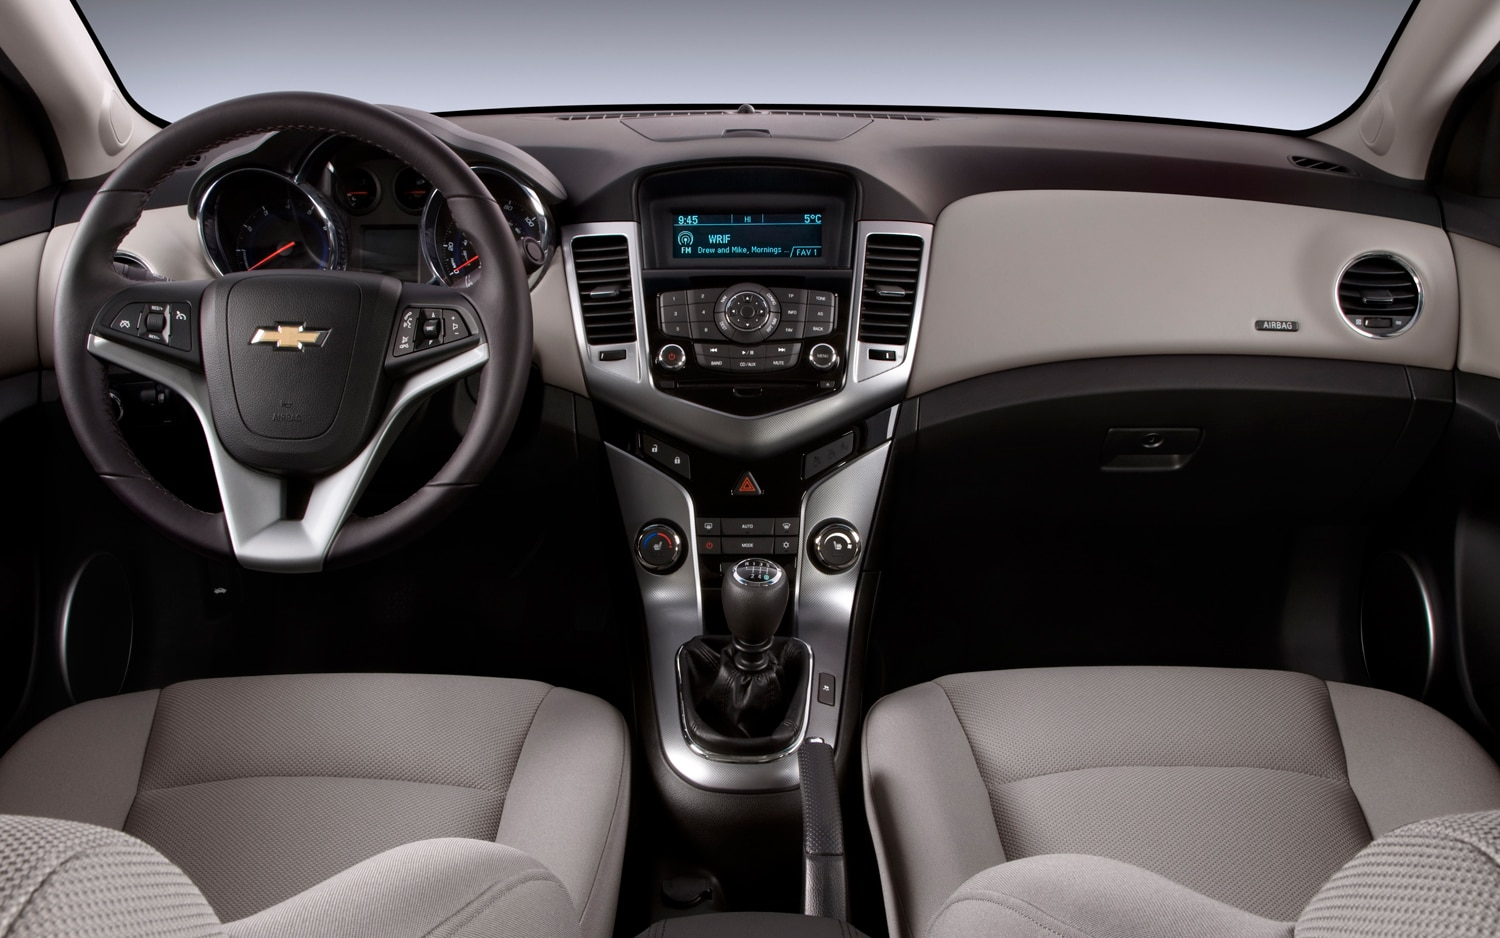 Cruze chevy cruze 2013 eco : Report: 2013 Chevrolet Cruze Diesel Could Get 50 MPG, Automatic ...